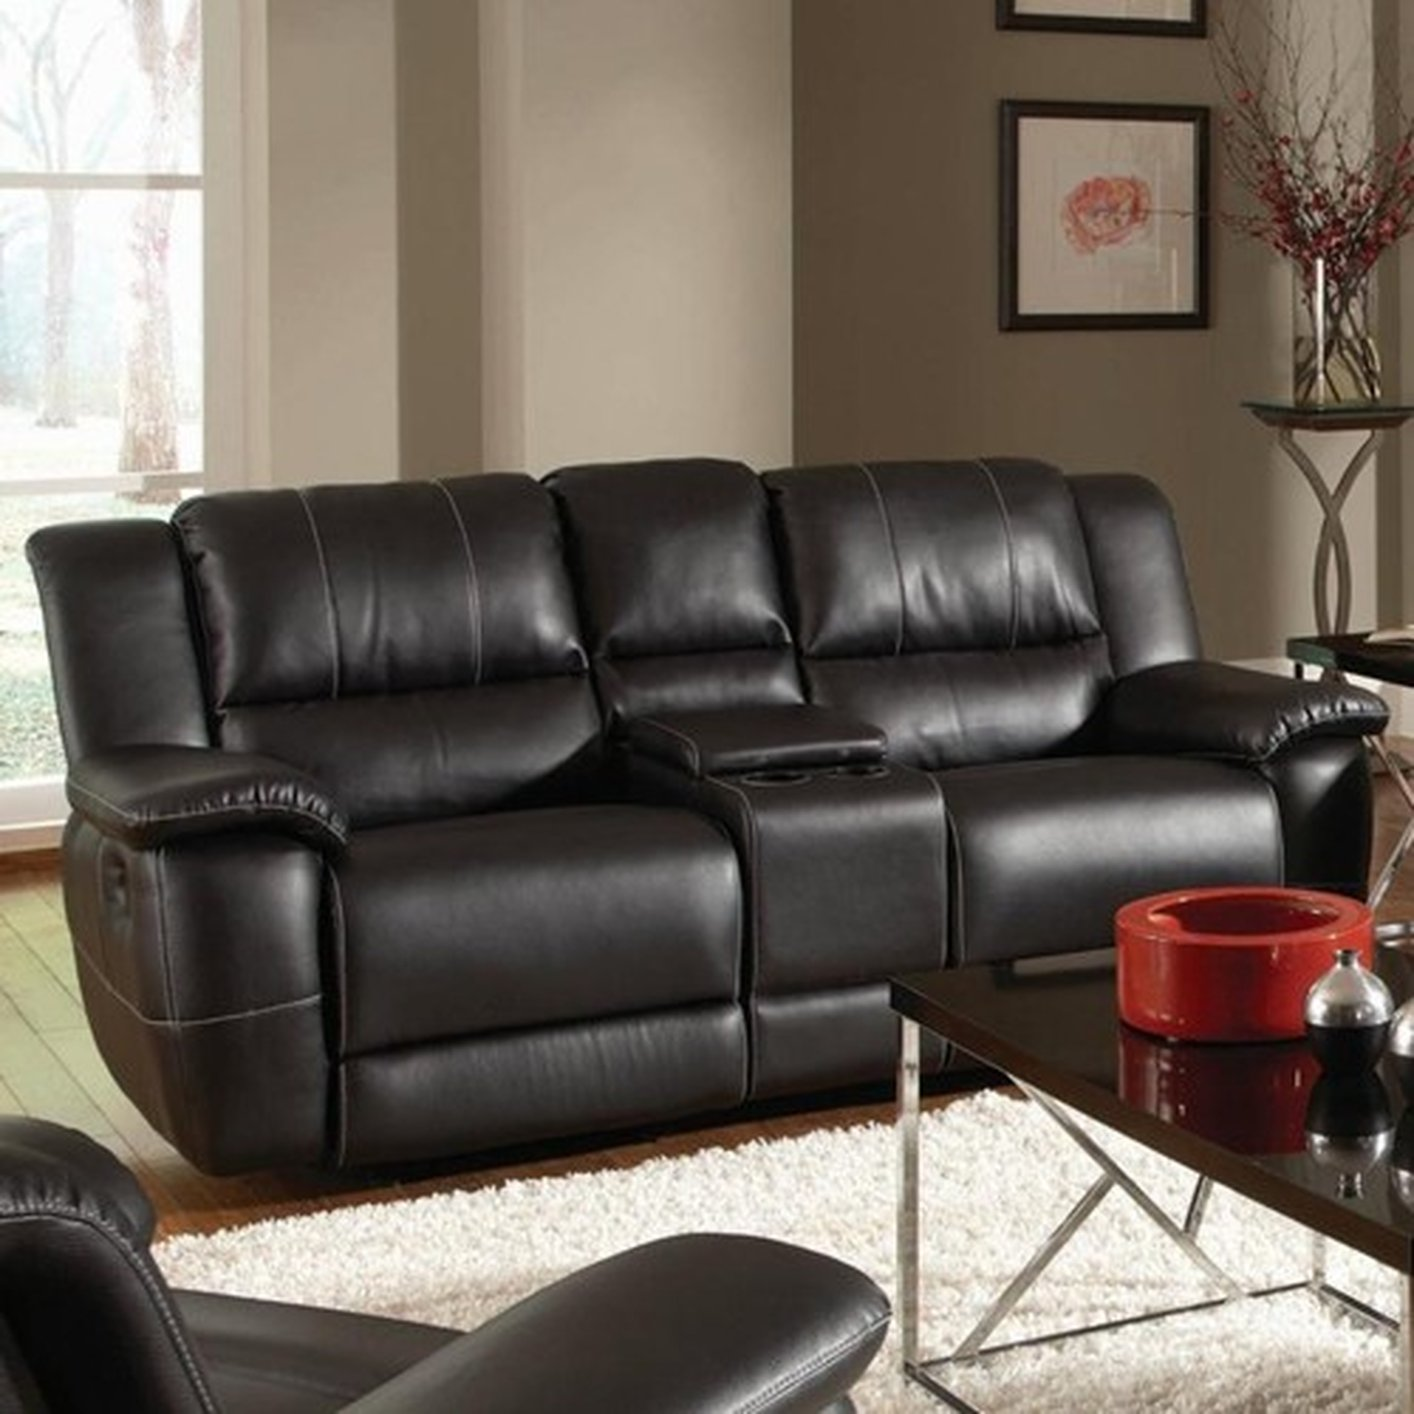 601062 black leather reclining loveseat steal a sofa furniture